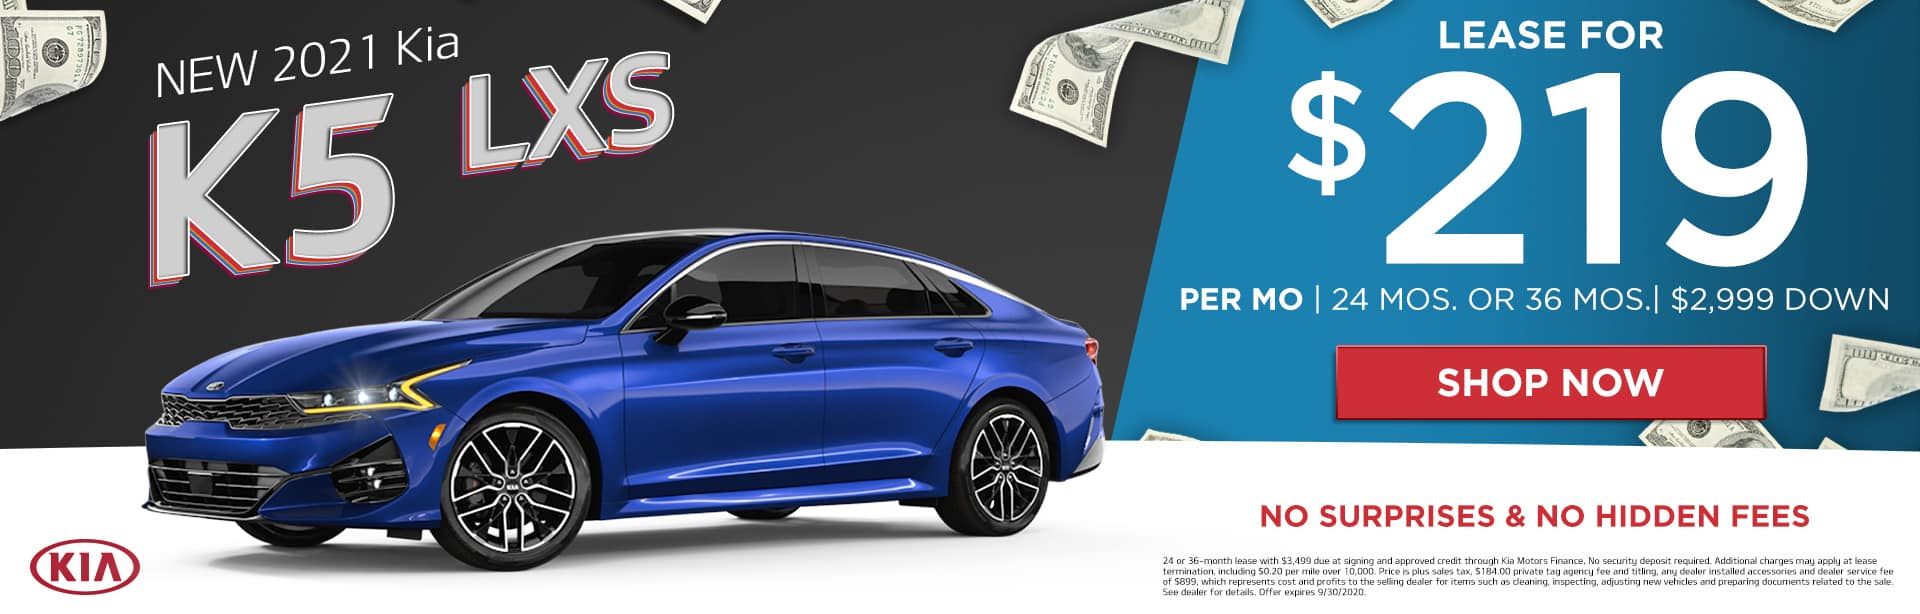 New 2021 Kia K5 LXS | Lease For $219 Per Month | 24 Months or 36 Months | $2,999 Down | No Surprises & No Hidden Fees